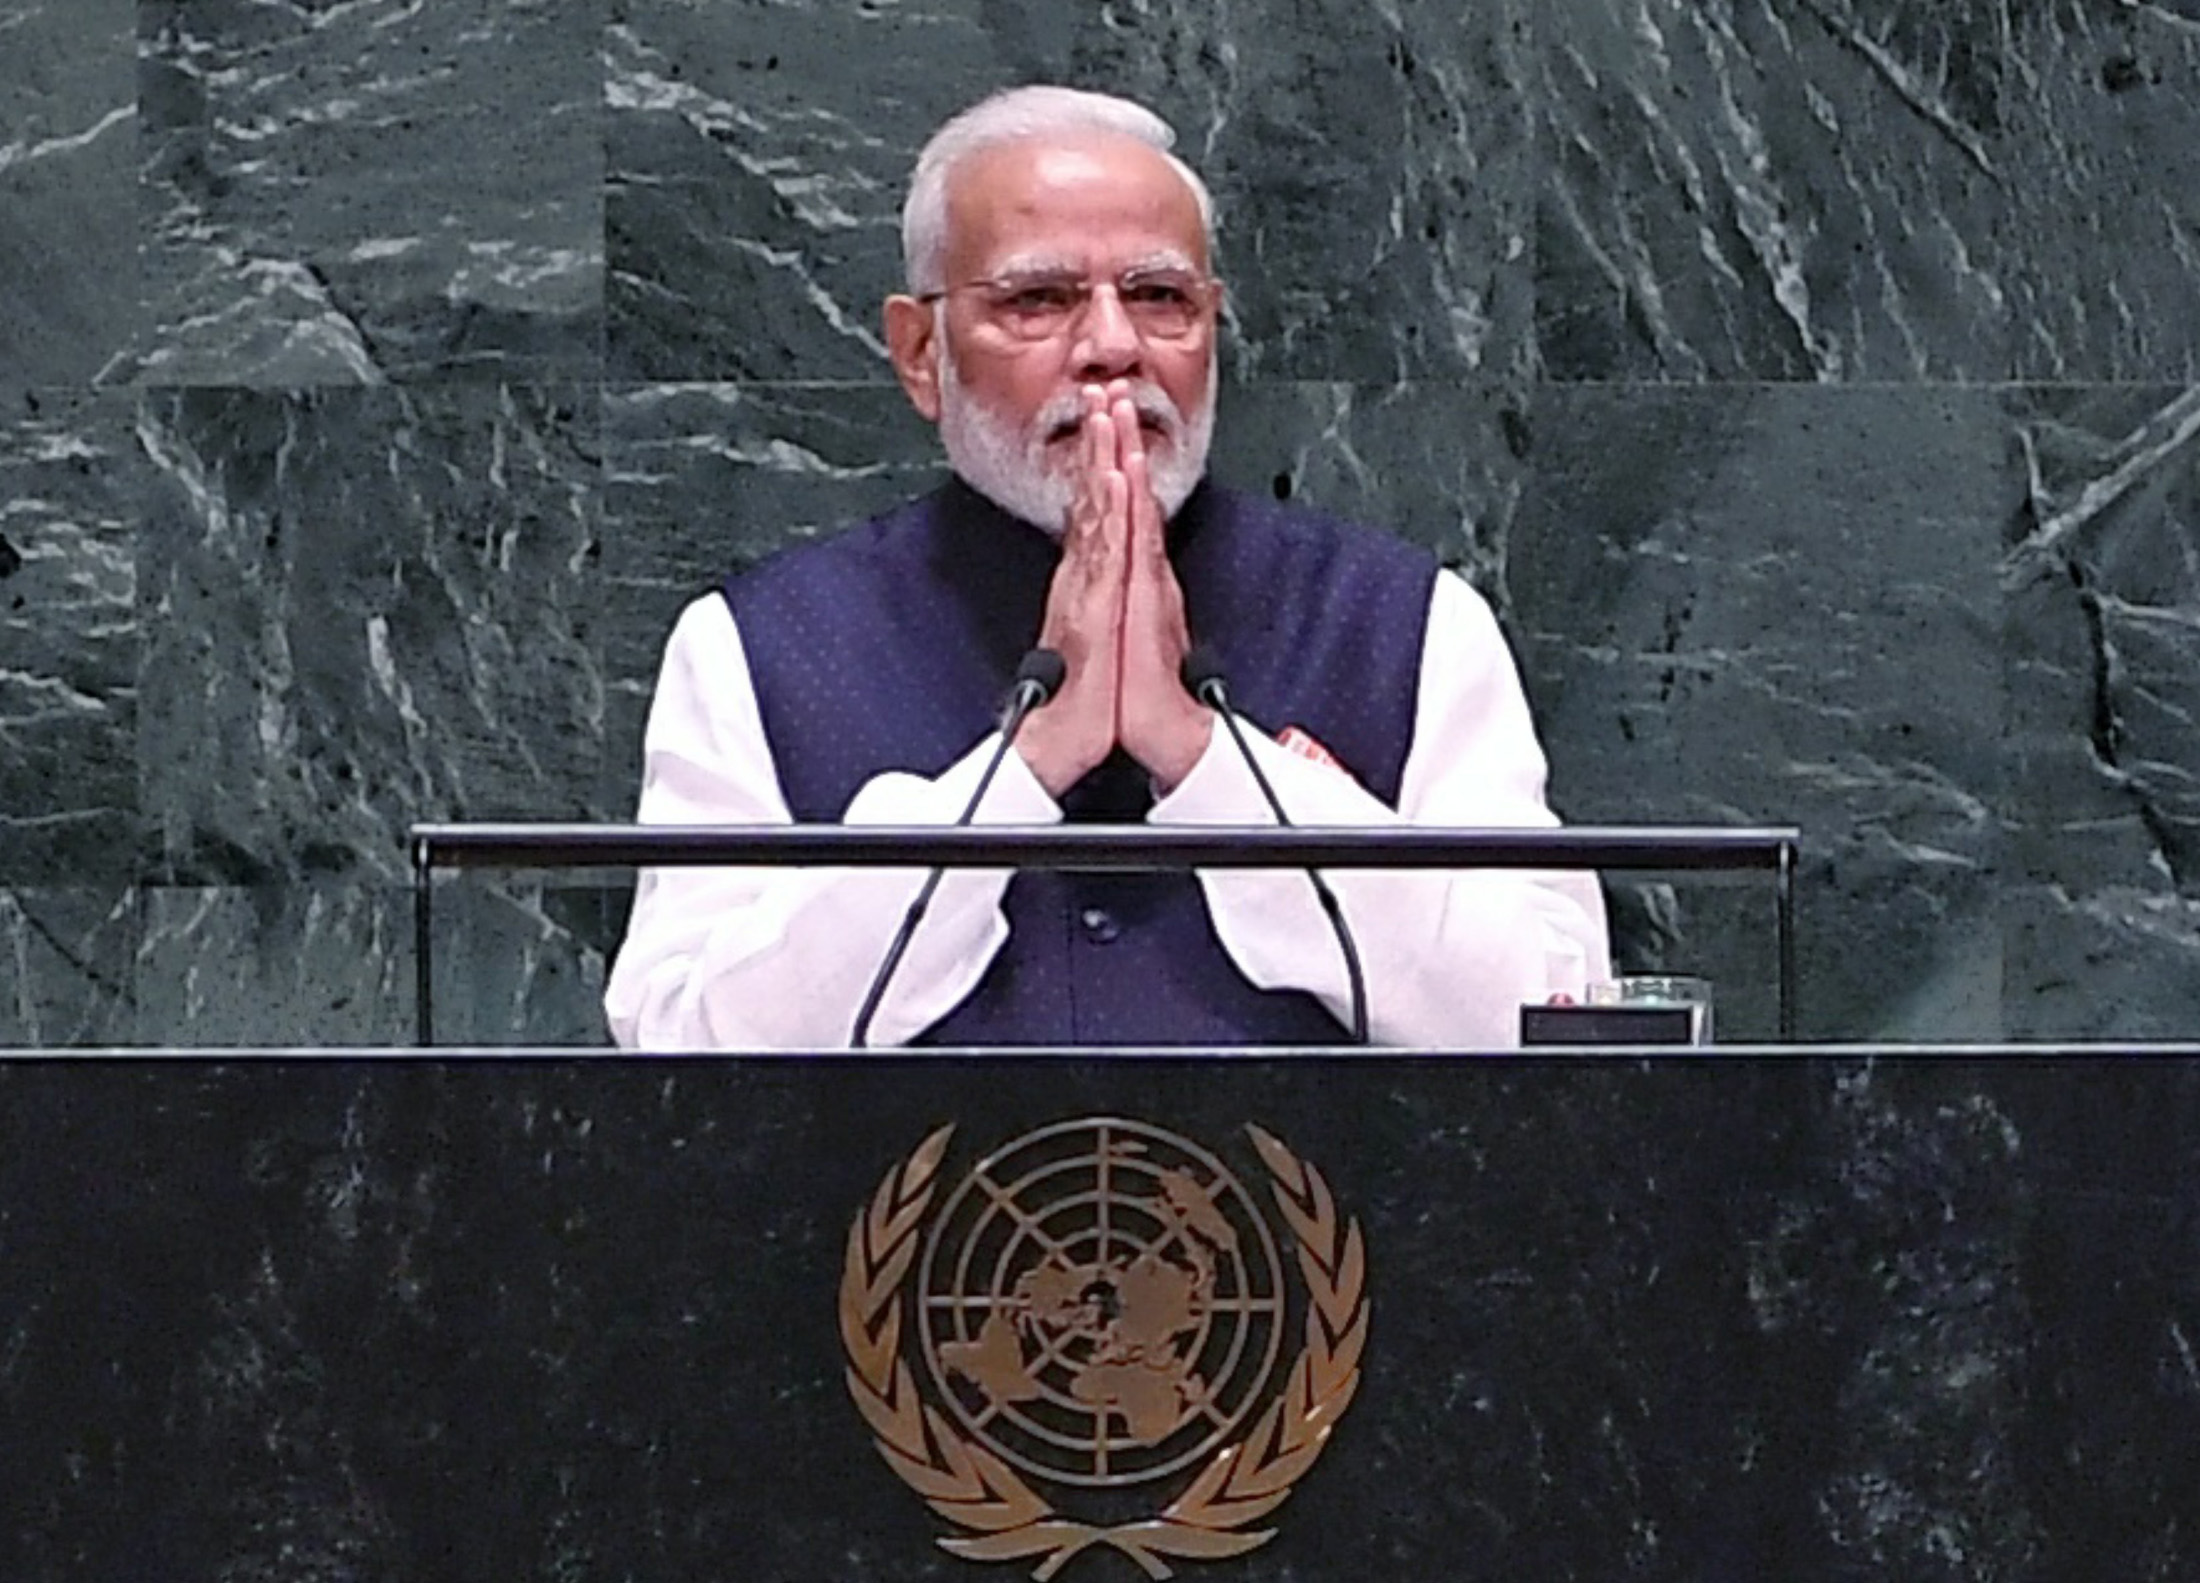 PM's address to the UNGA